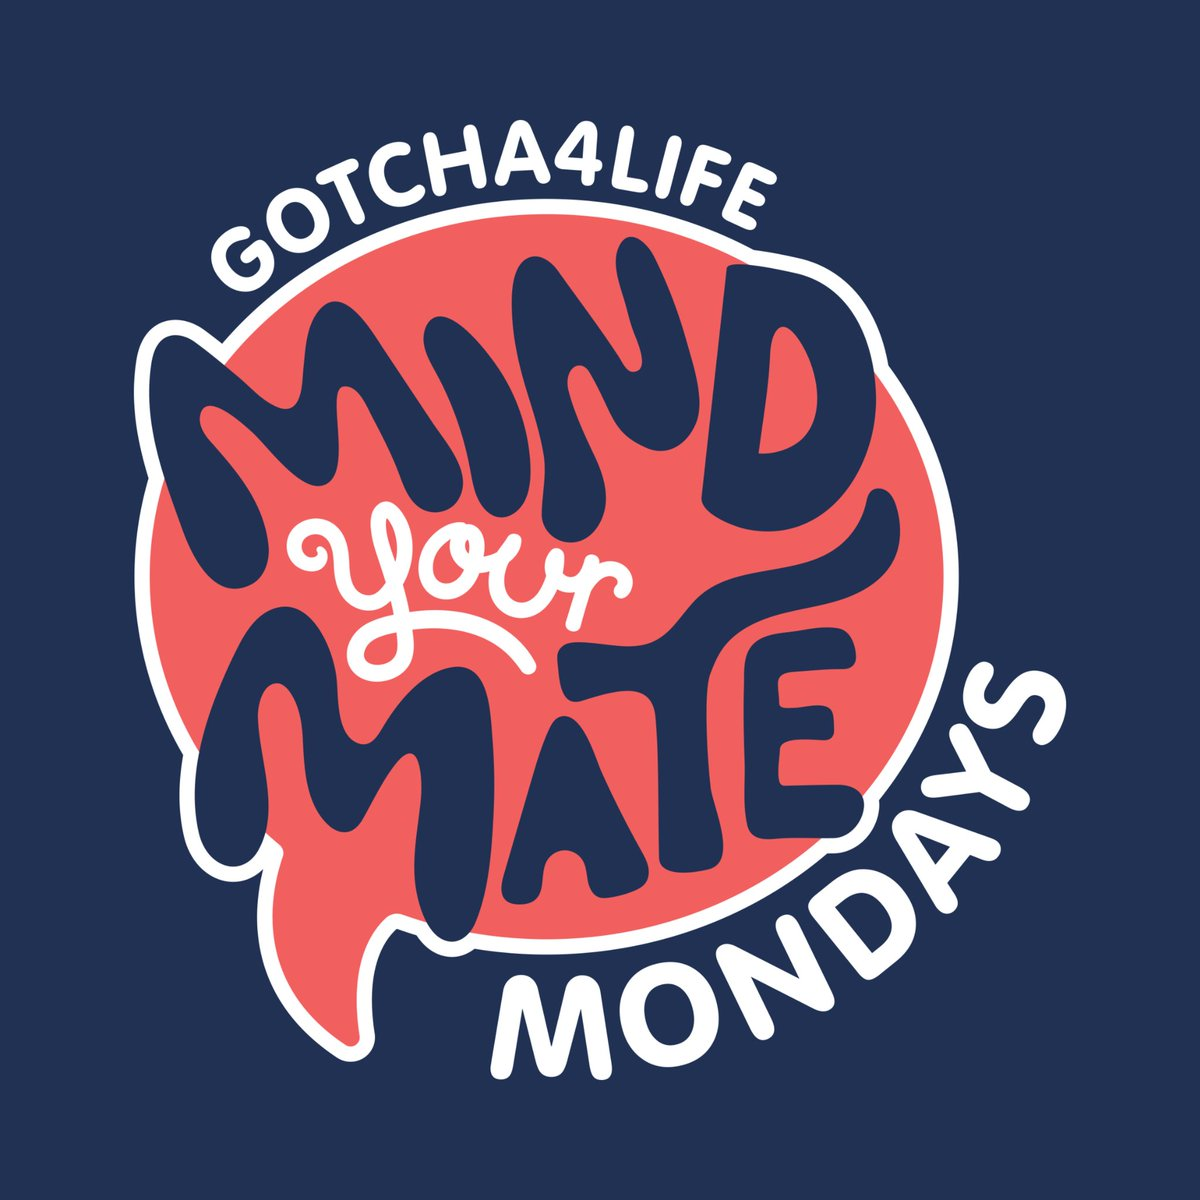 Best way to beat the Monday Blues? Make it the day you check in with your #Gotcha4Life Mate! #MindYourMateMondays are all about staying consistent and taking the time to touch base with your Mate.  Learn more about #MindYourMate and take the pledge here: